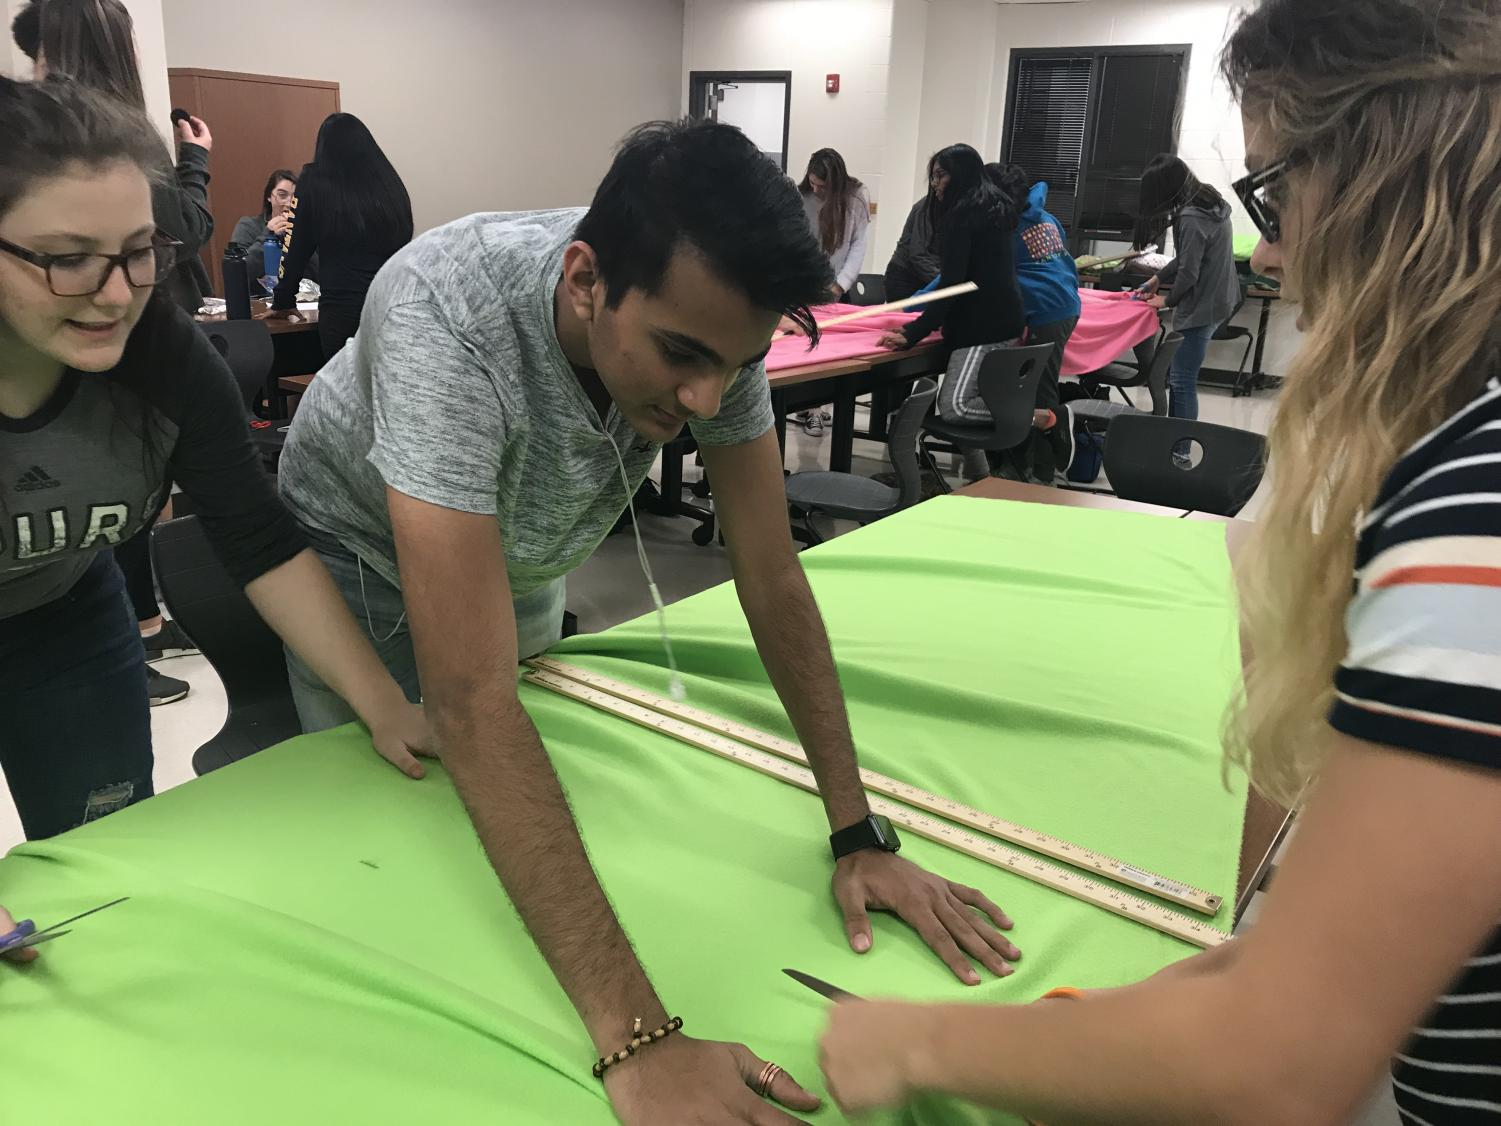 Isabel Cameron '19 and Azaan Moledina '19 help Mikayla Piwonka '19 cut the fabric. Photo courtesy of UNICEF Club.